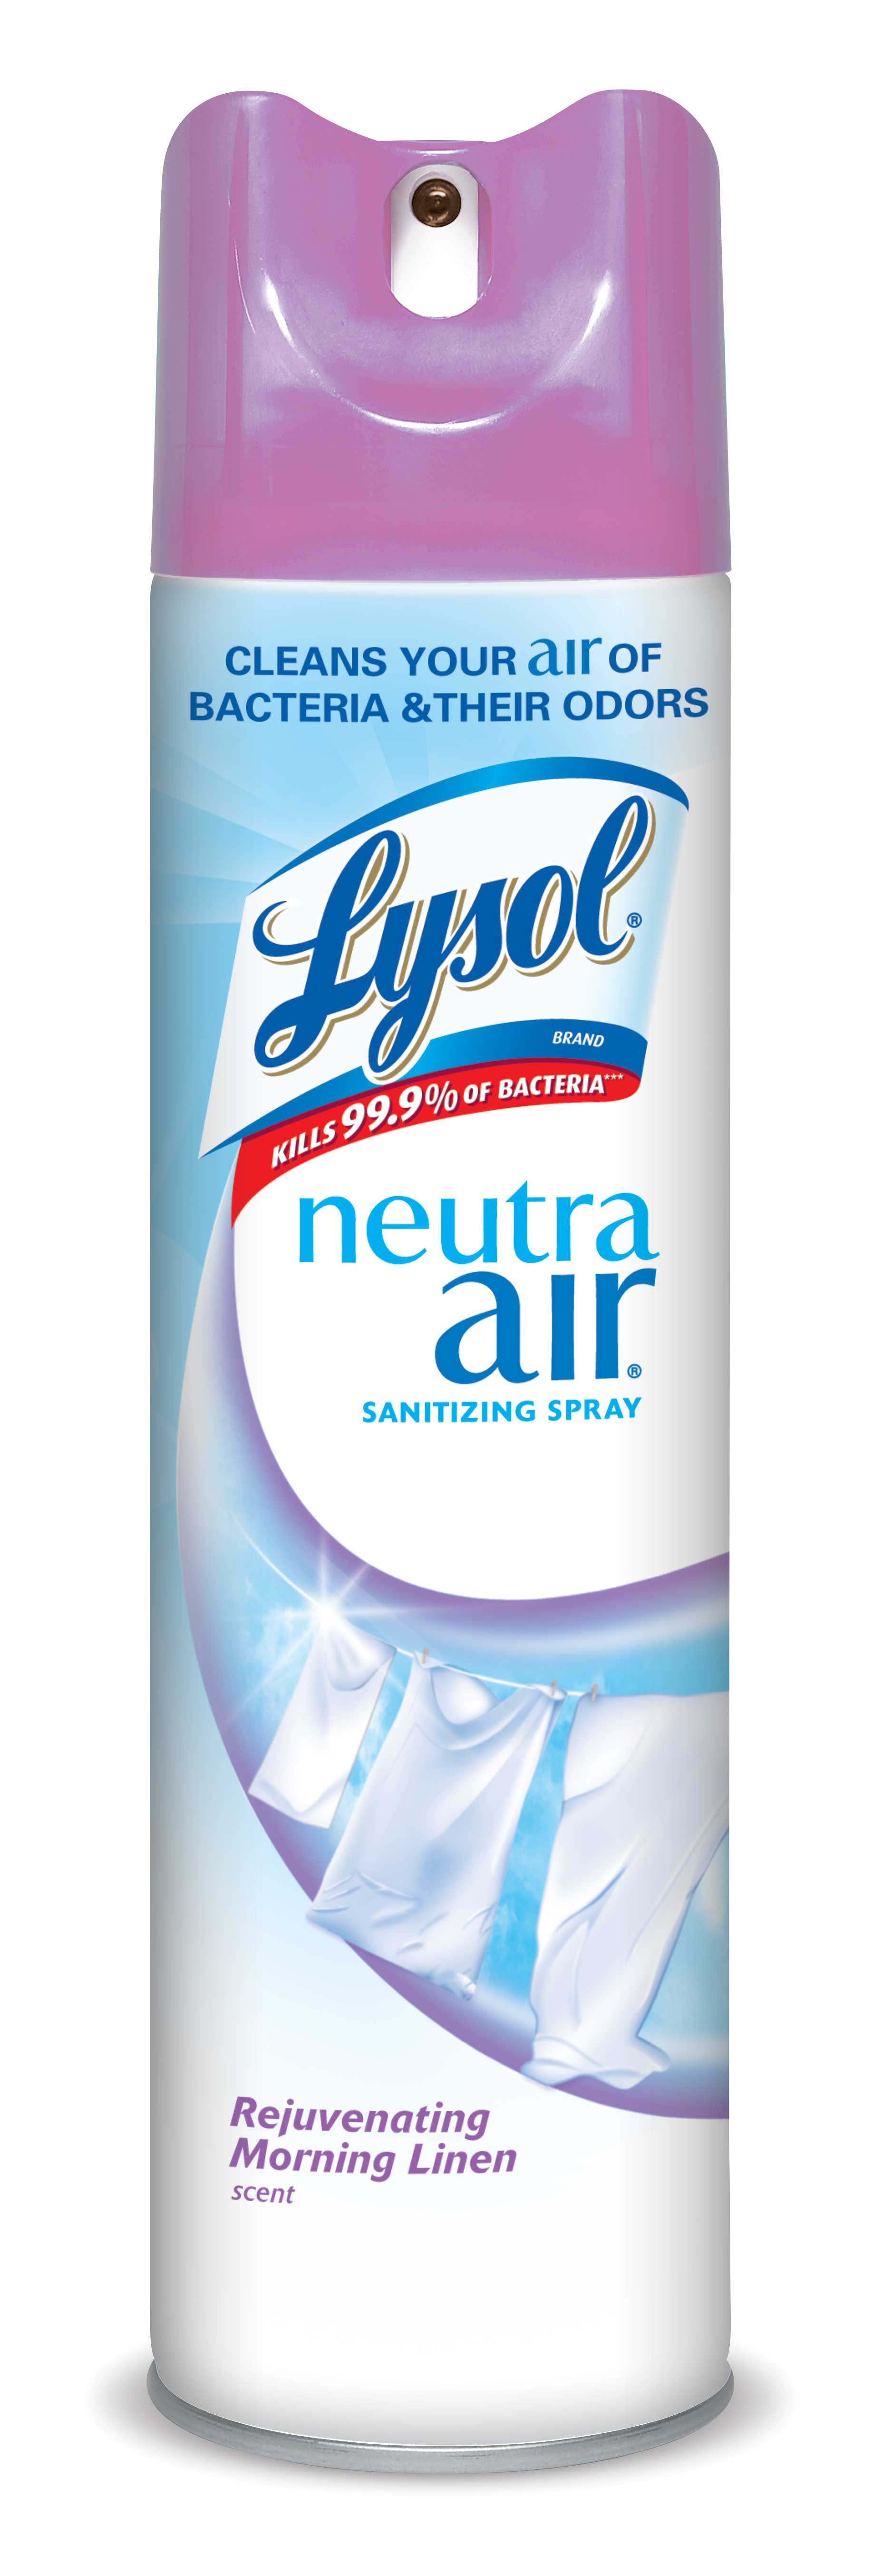 Lysol Neutra Air Sanitizing Spray, Morning Linen, 10oz